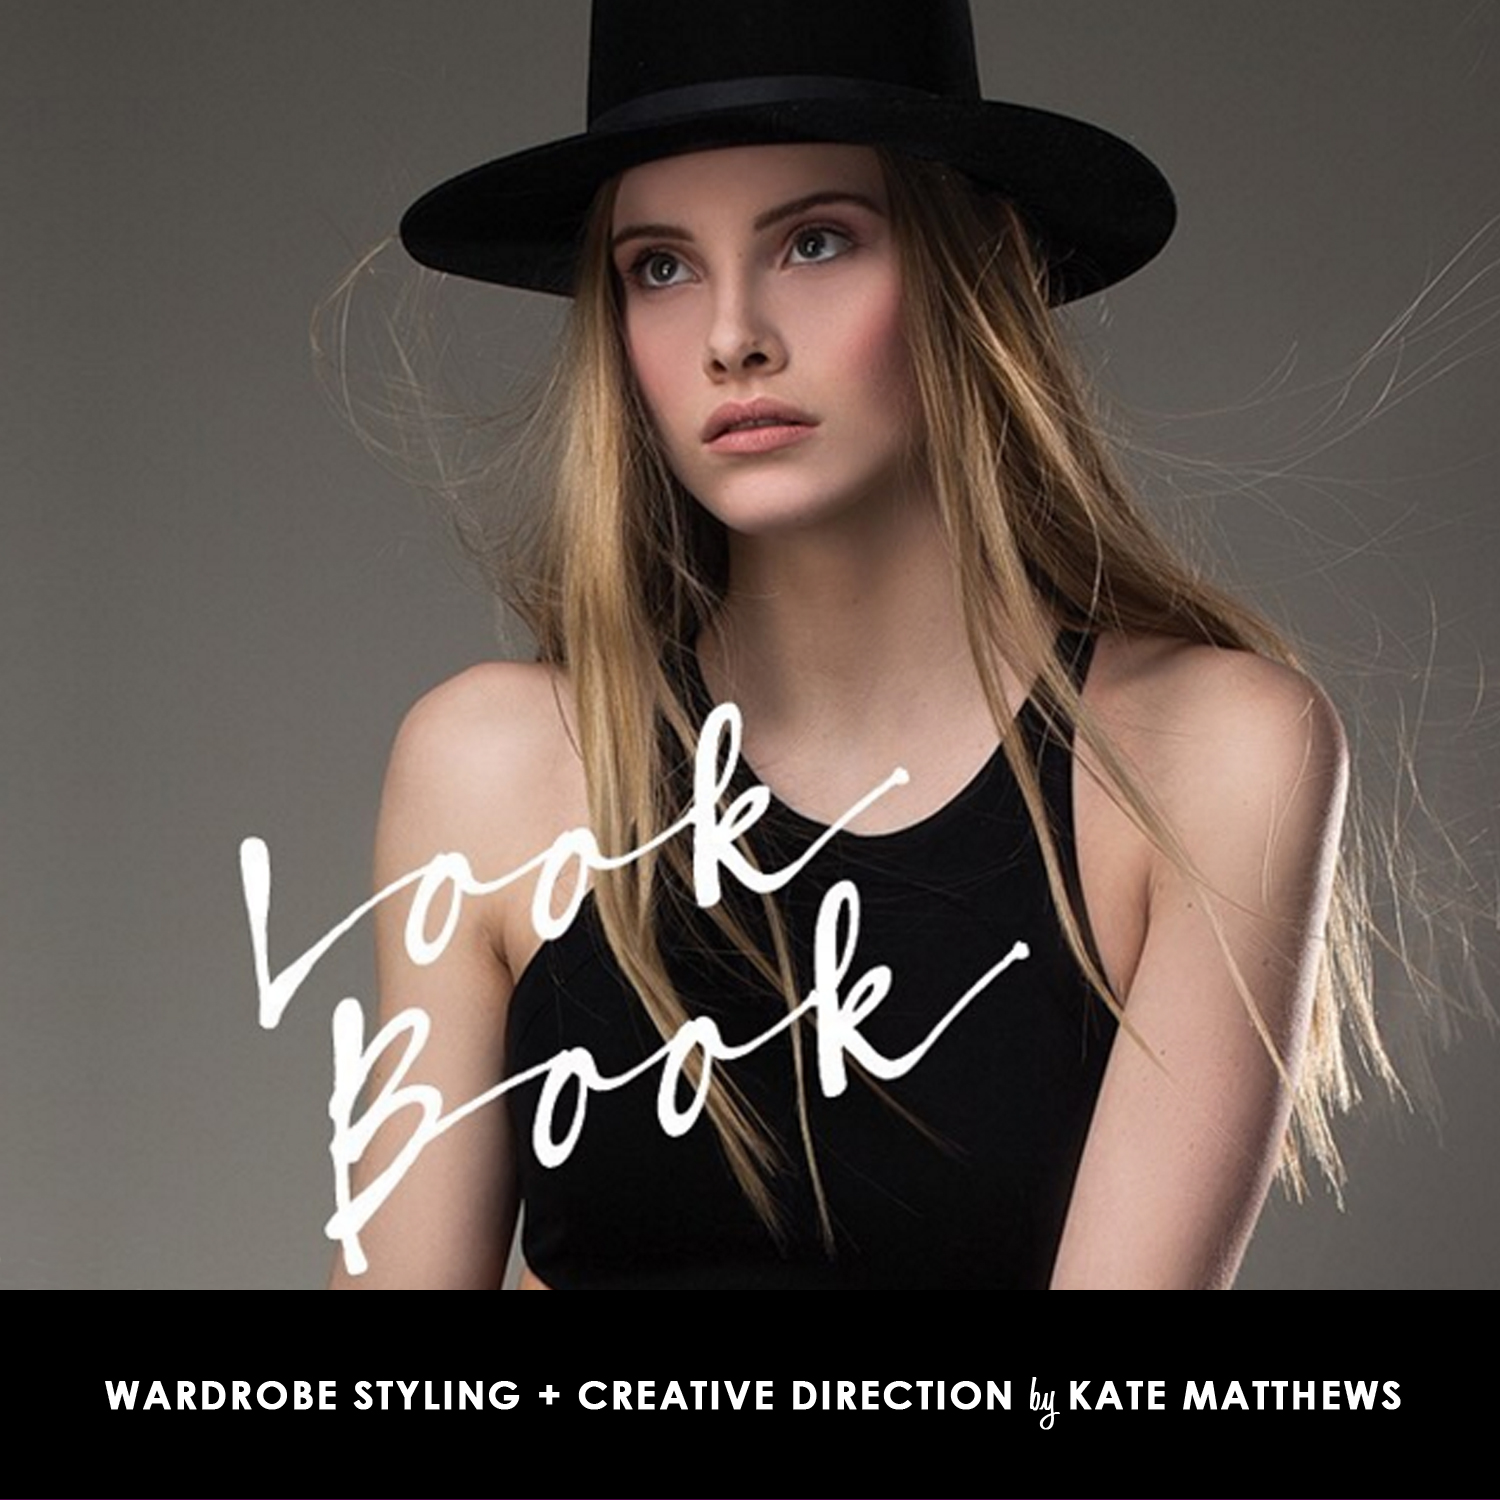 FASHION-LOOK-BOOK-BY-WARDROBE-STYLIST-KATE-MATTHEWSHANNAH DAWN AUDETTE NEXT MODELS